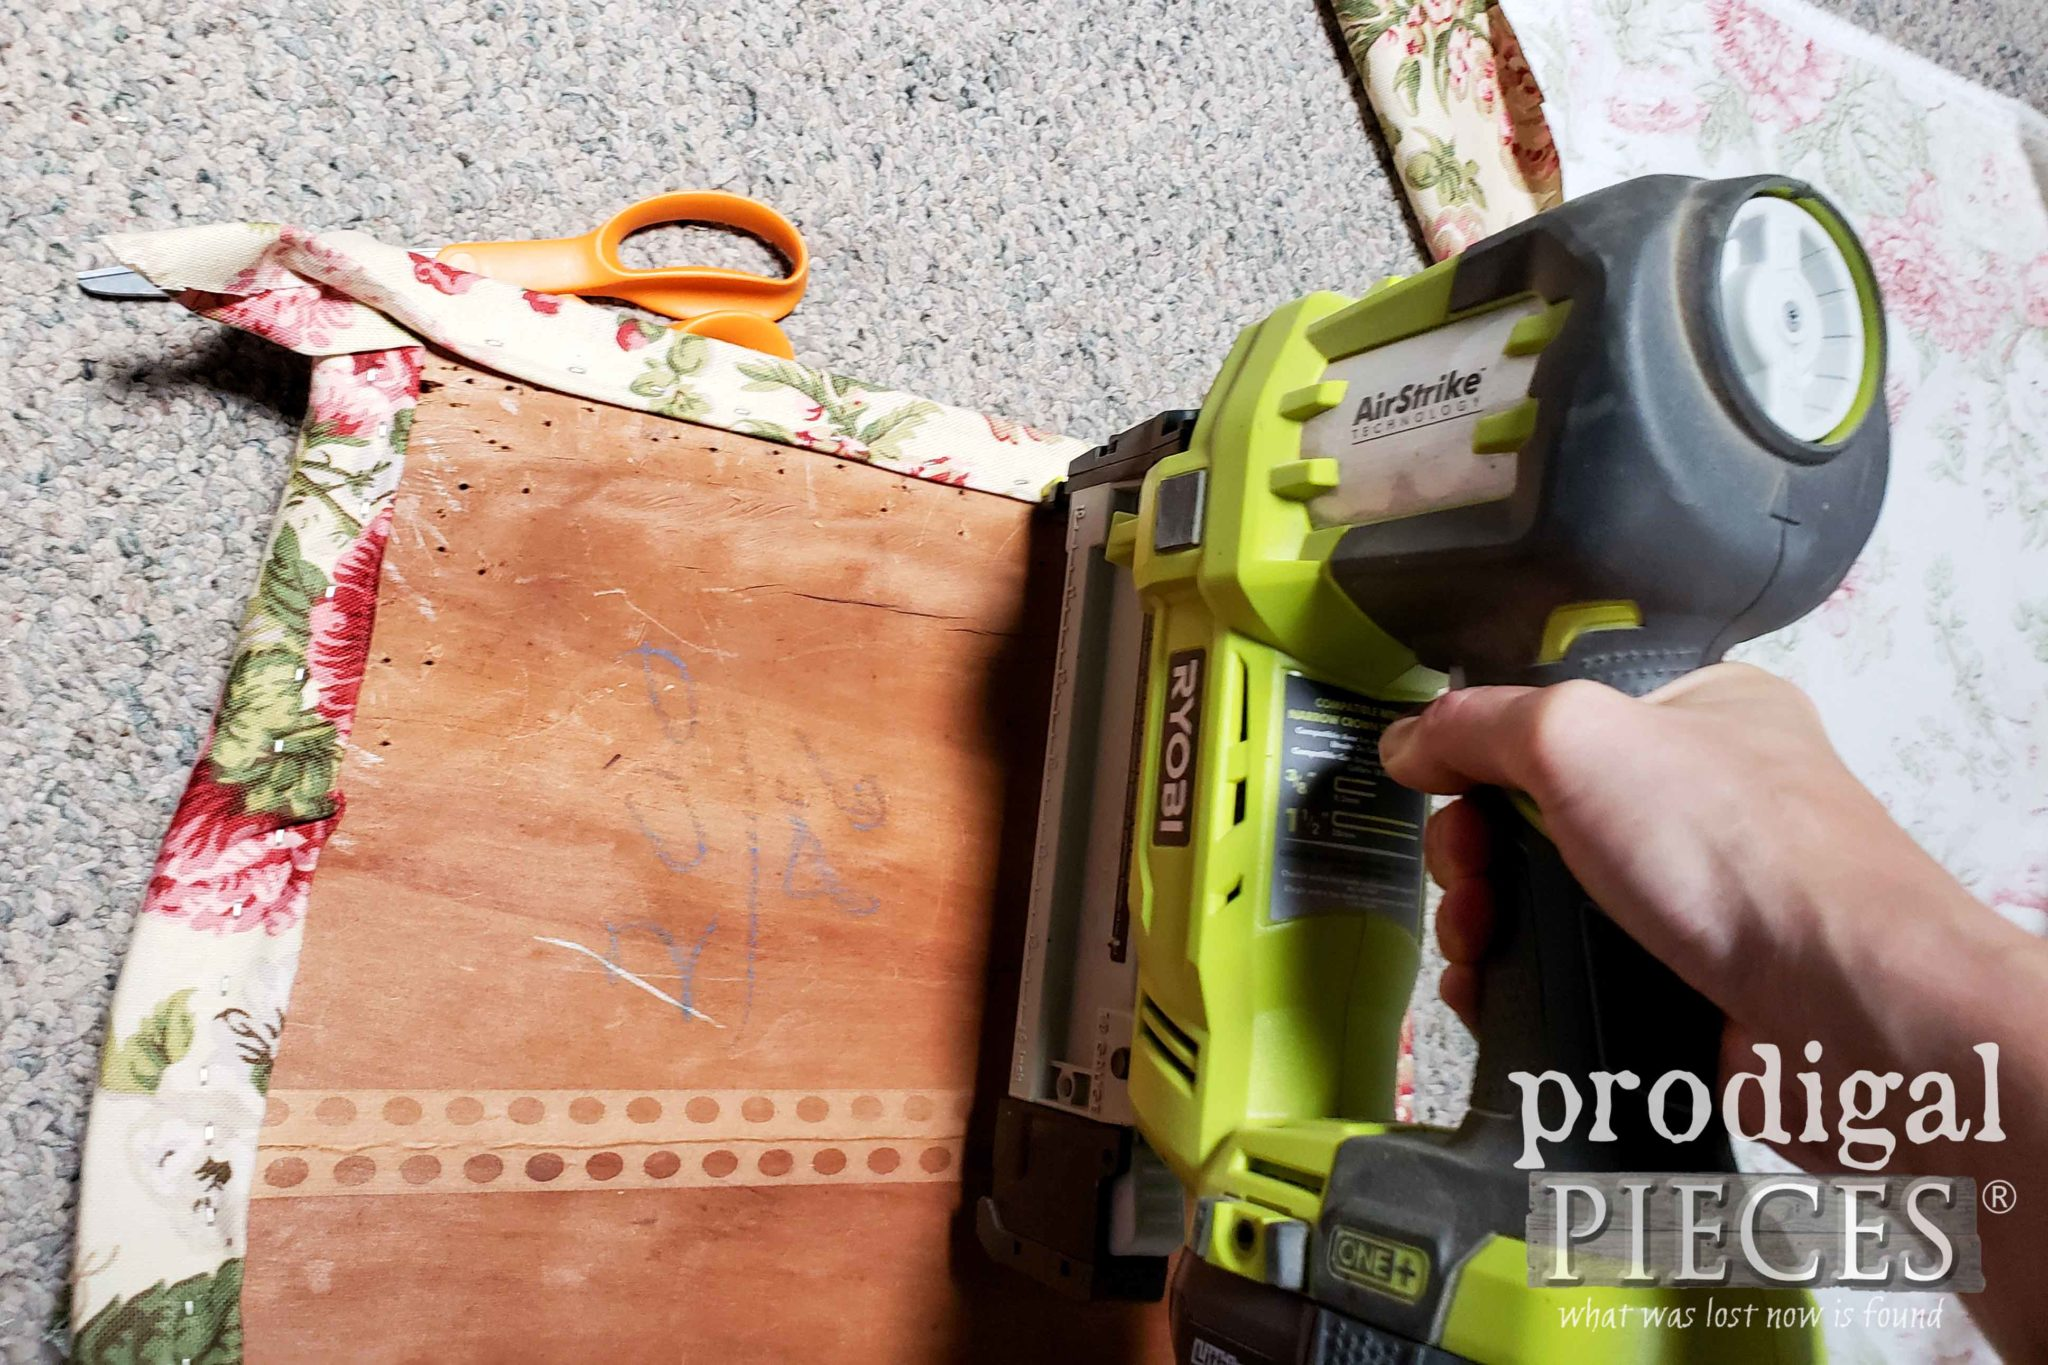 Upholstery Work with Ryboi AirStrike Stapler by Larissa of Prodigal Pieces | prodigalpieces.com